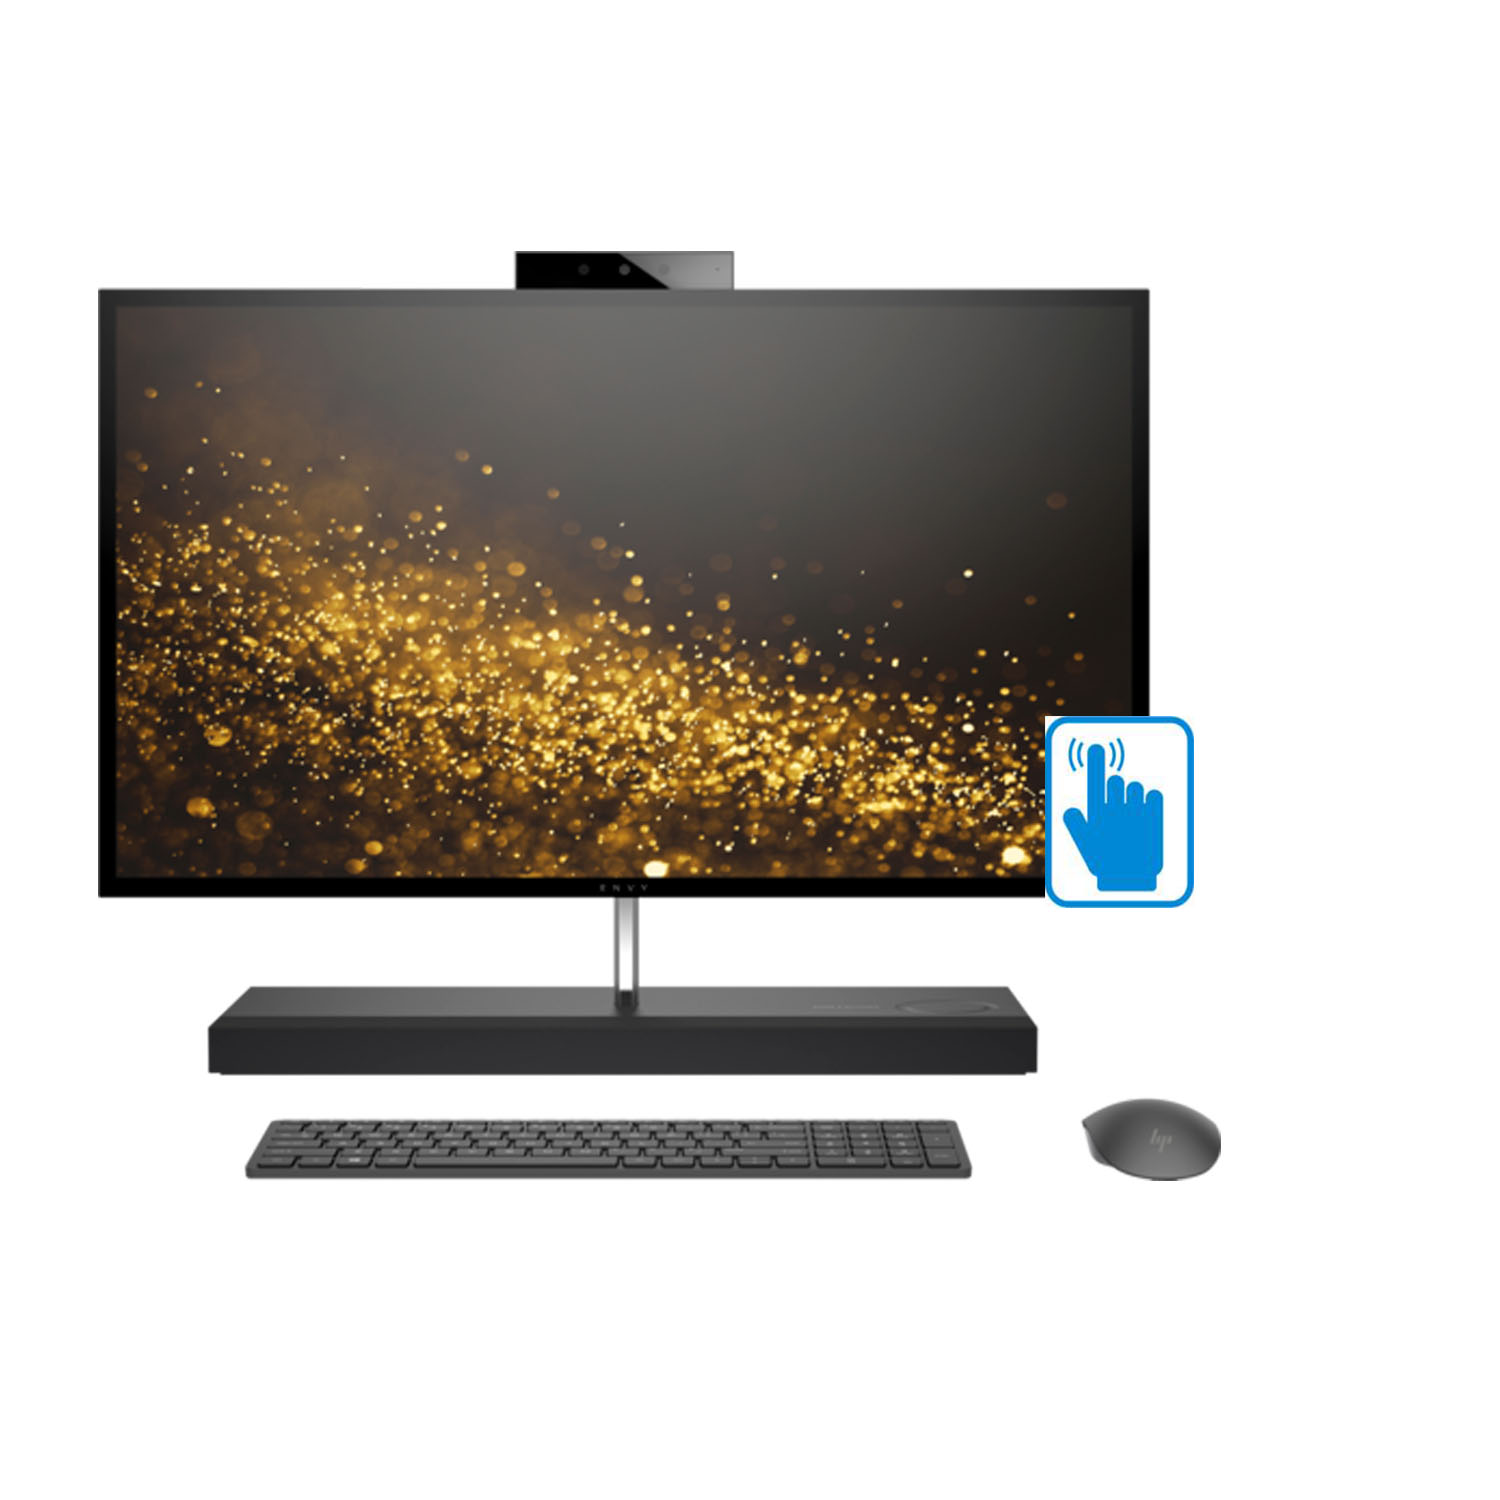 "HP ENVY 27 QHD Touch Premium Home and Business All-in-One Desktop (Intel 8th Gen i7-8700T 6-cores, 16GB RAM, 2TB HDD + 256GB PCIe SSD, 27"" QHD Touchscreen 2560x1440, GeForce GTX 1050, Win 10 Pro)"